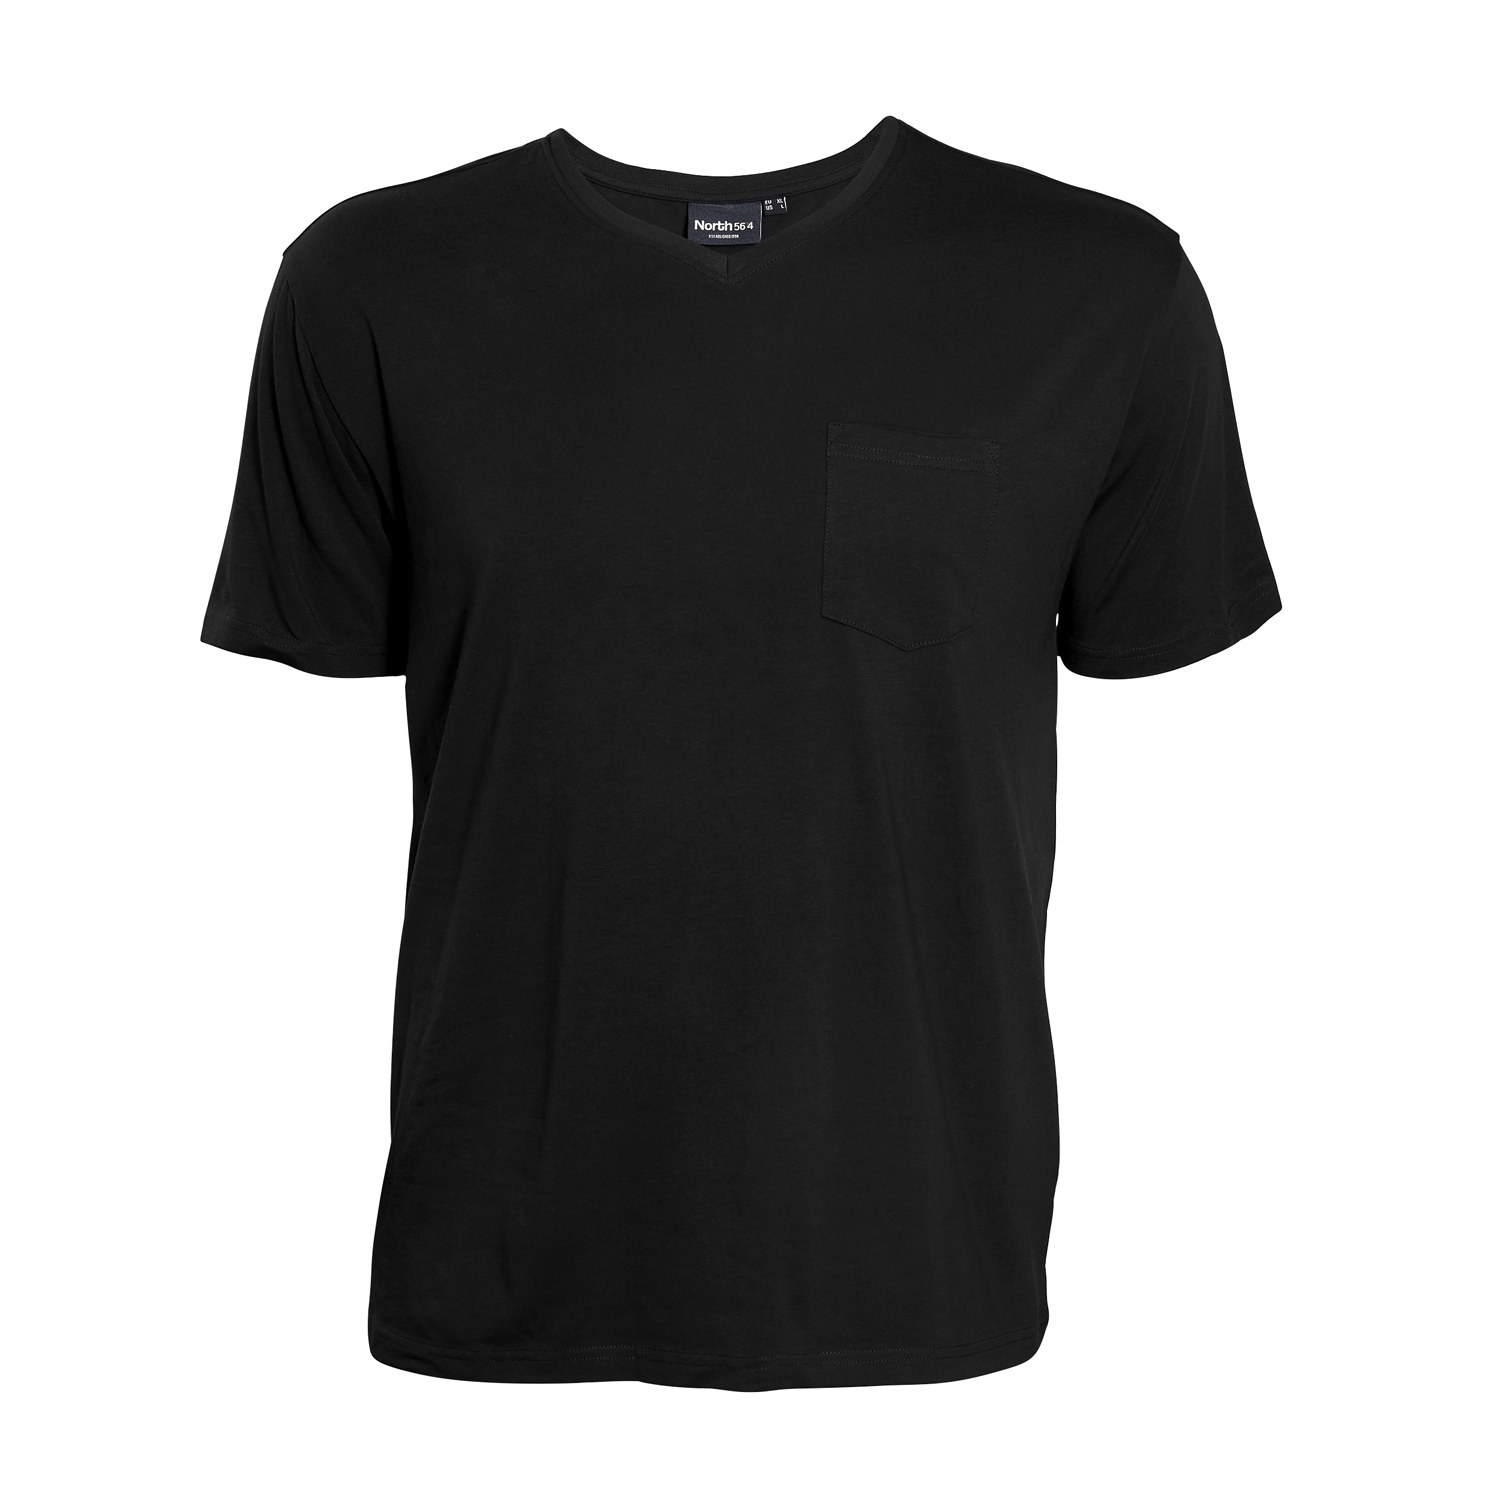 Detail Image to Black T-Shirt for men by North 56°4 in oversizes up to 8XL